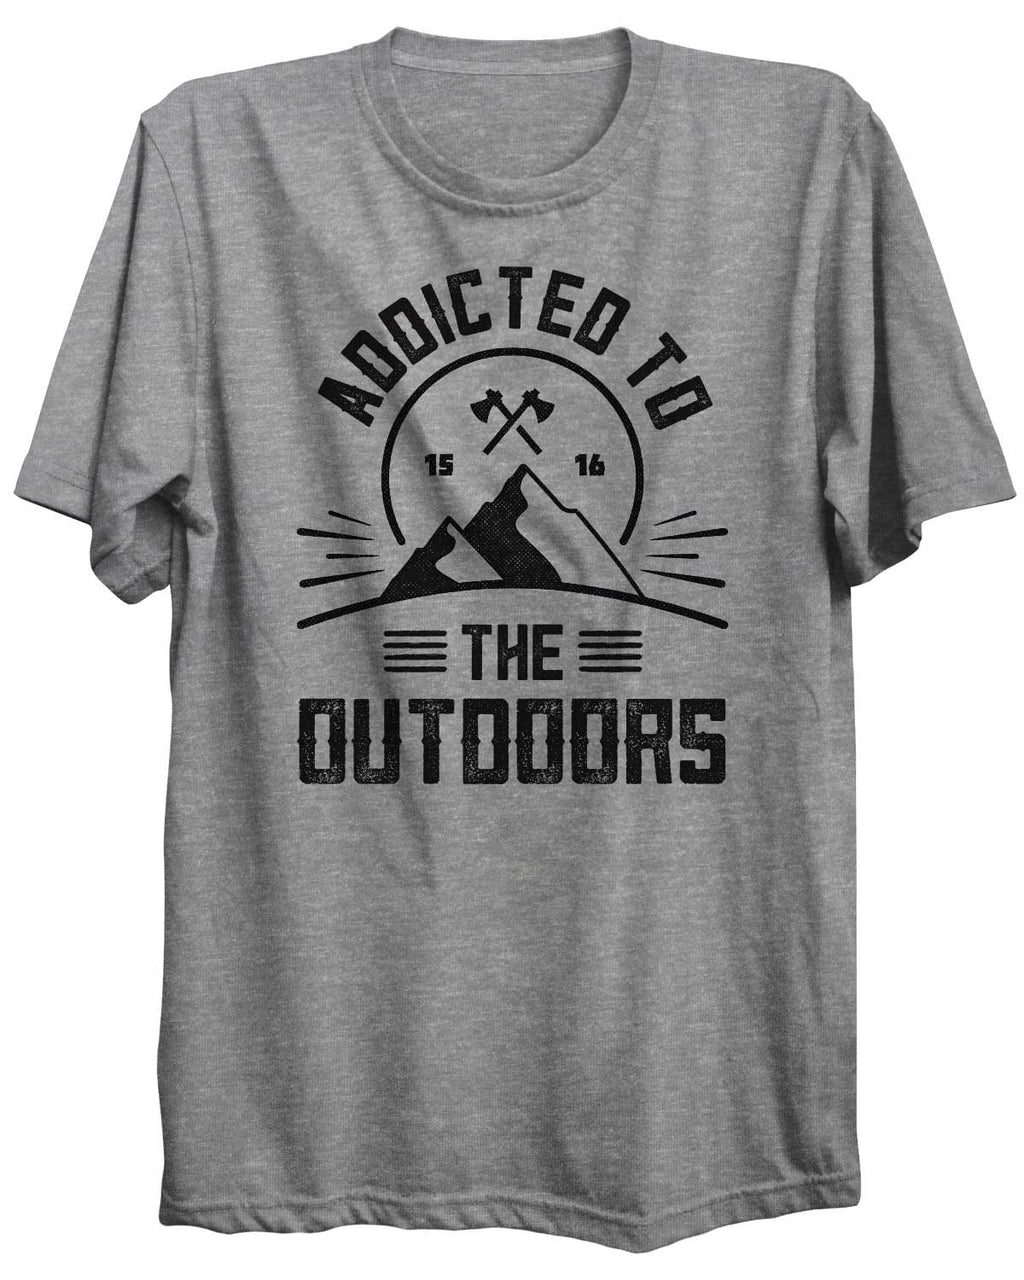 Addicted To The Outdoors Camping Unisex Tshirt